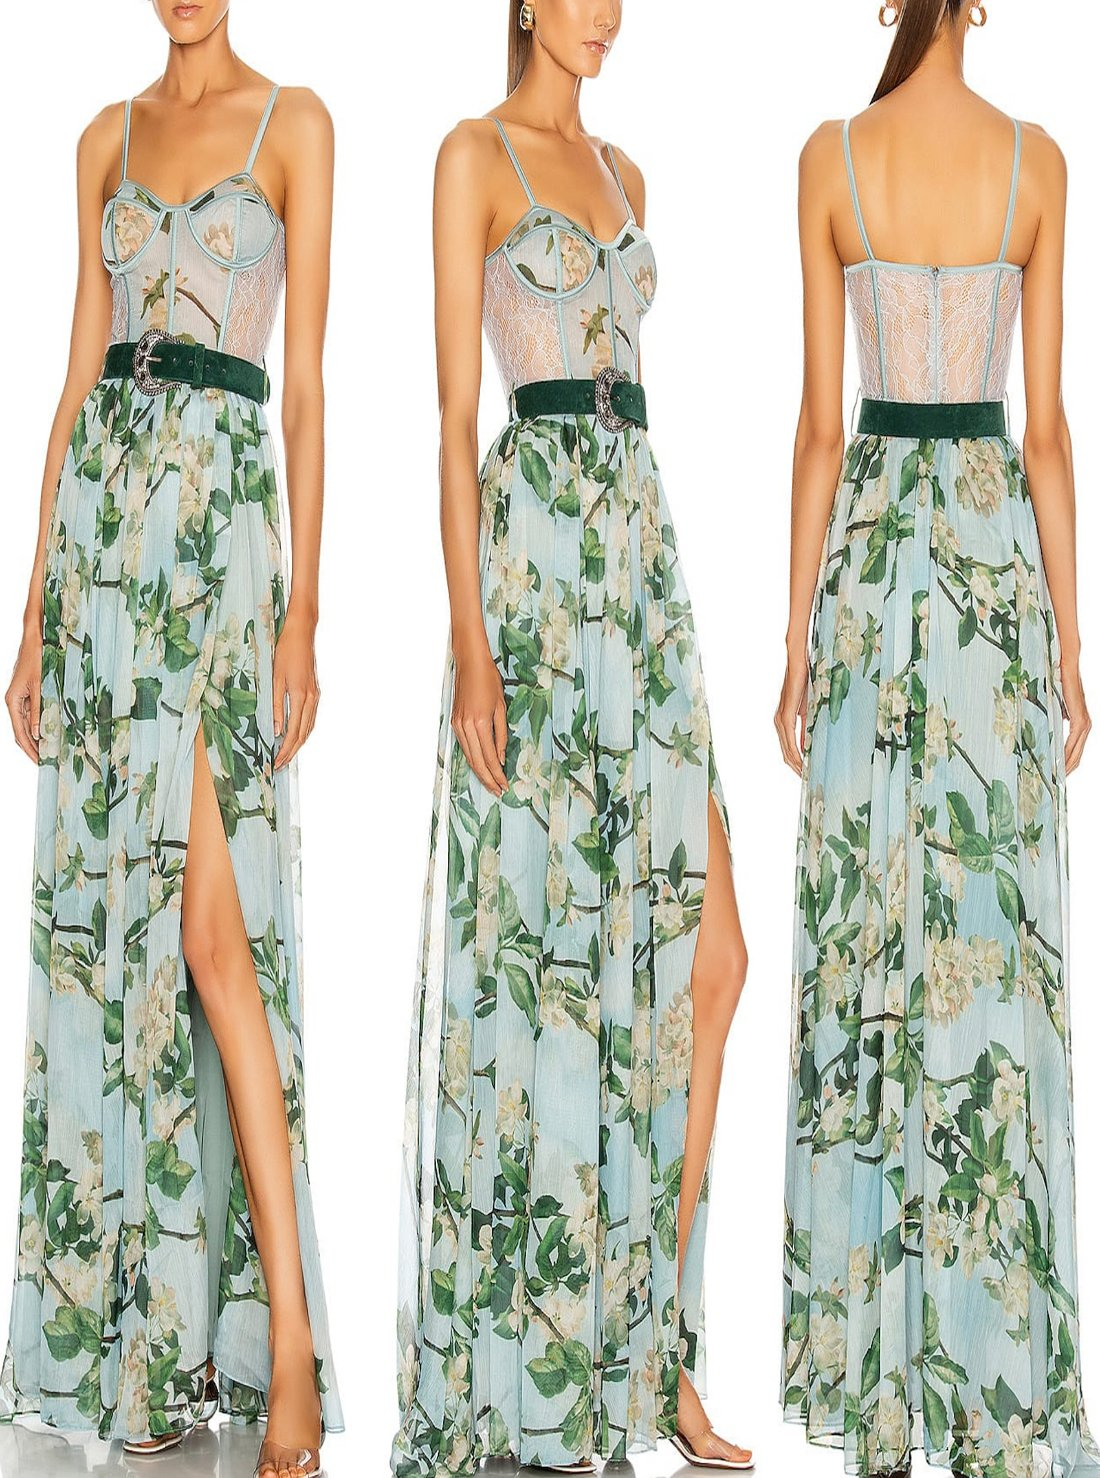 Casual Summer Fashionable Floral Dress